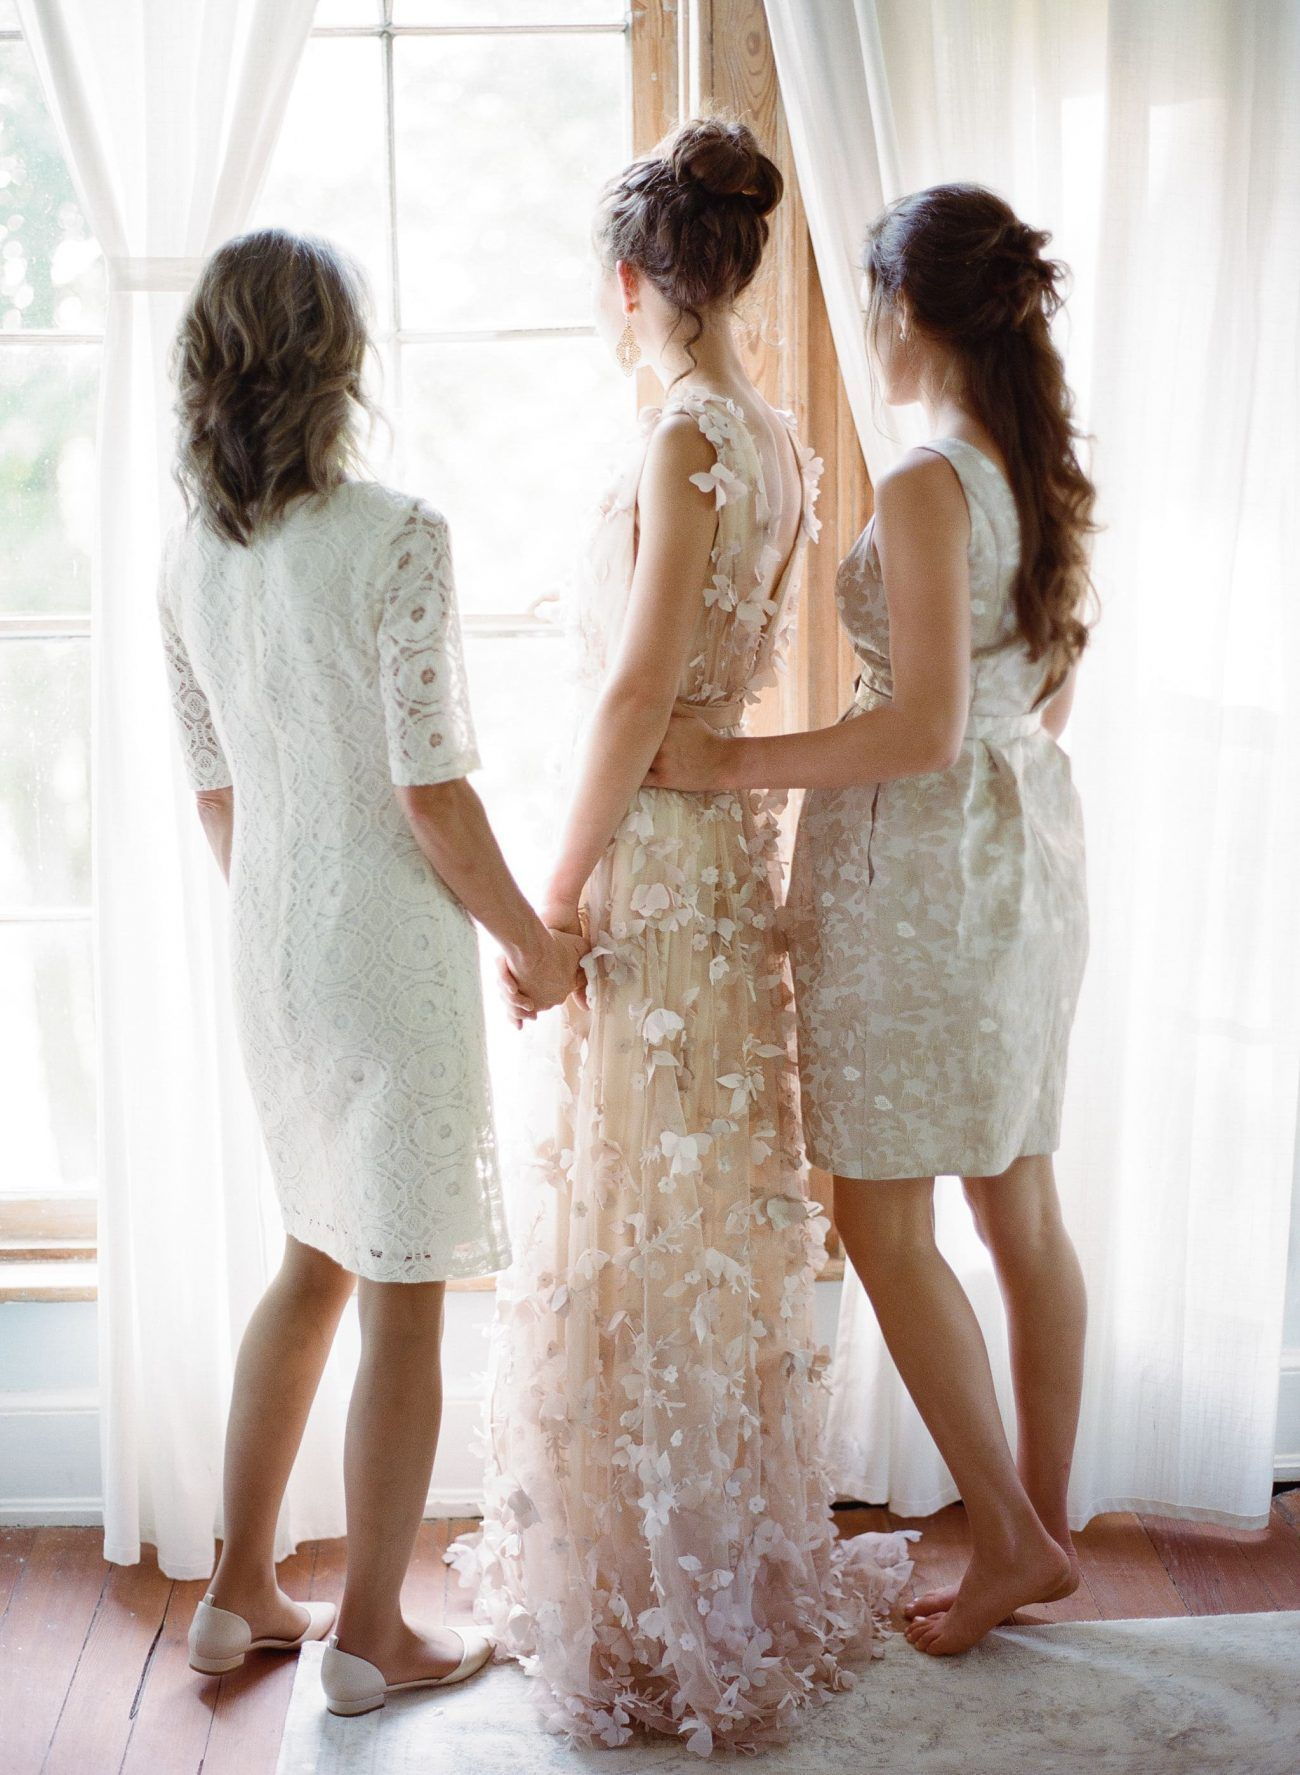 Mother's Love: How to Honor Your Mother on Your Wedding Day